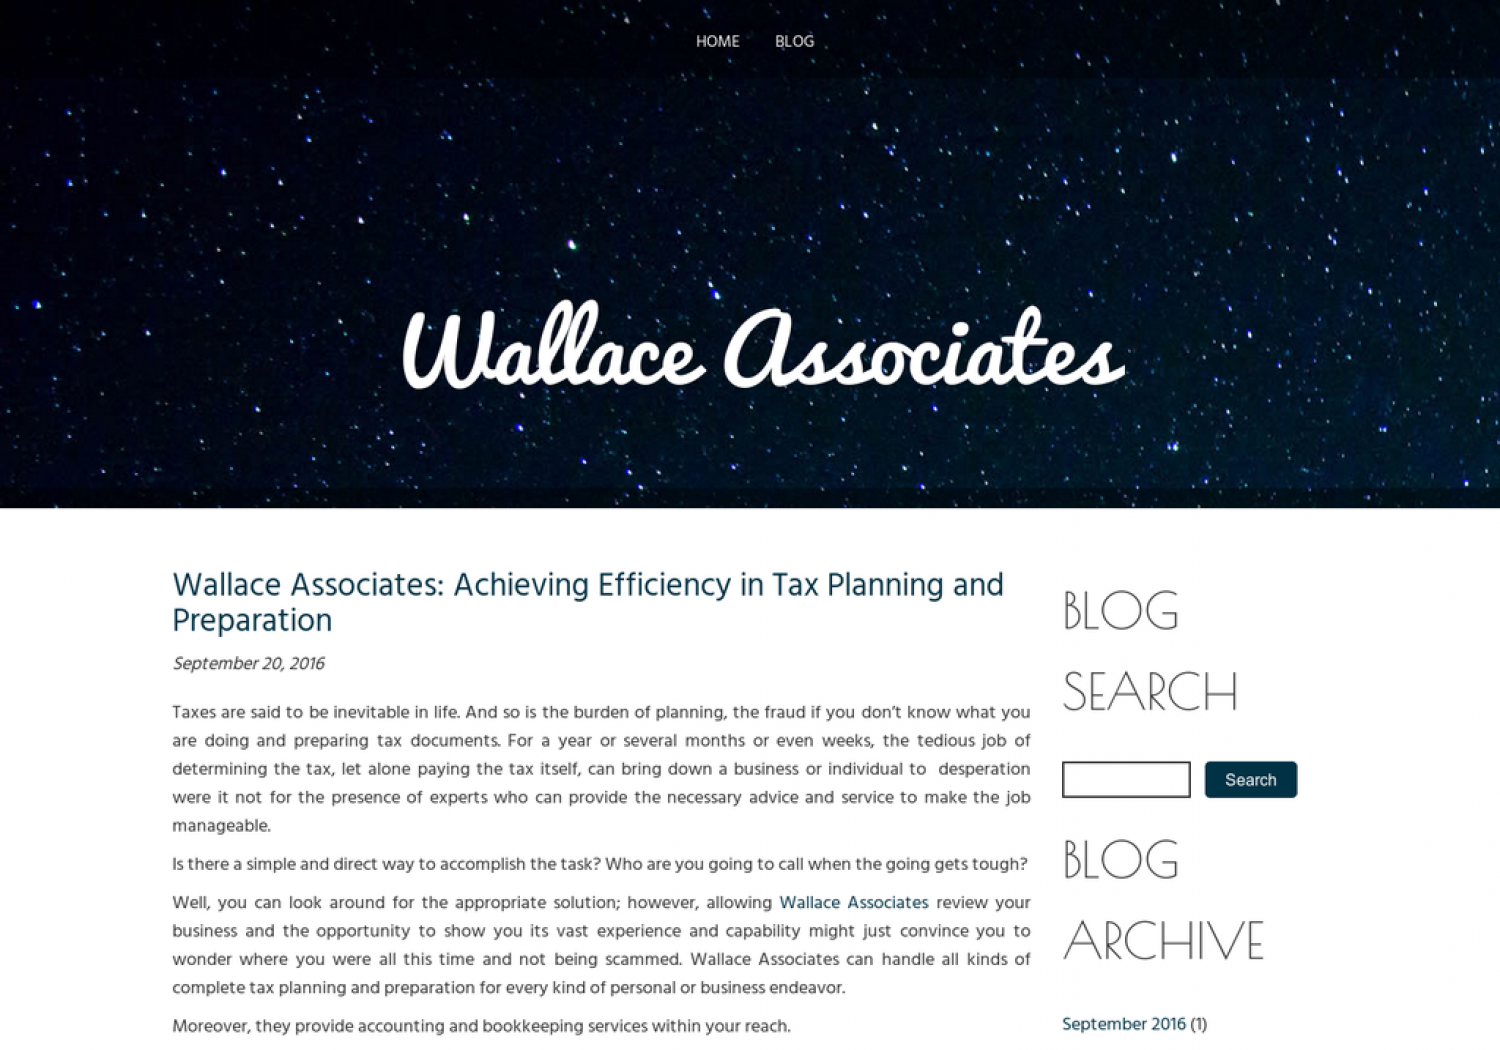 Wallace Associates: Achieving Efficiency in Tax Planning and Preparation Infographic